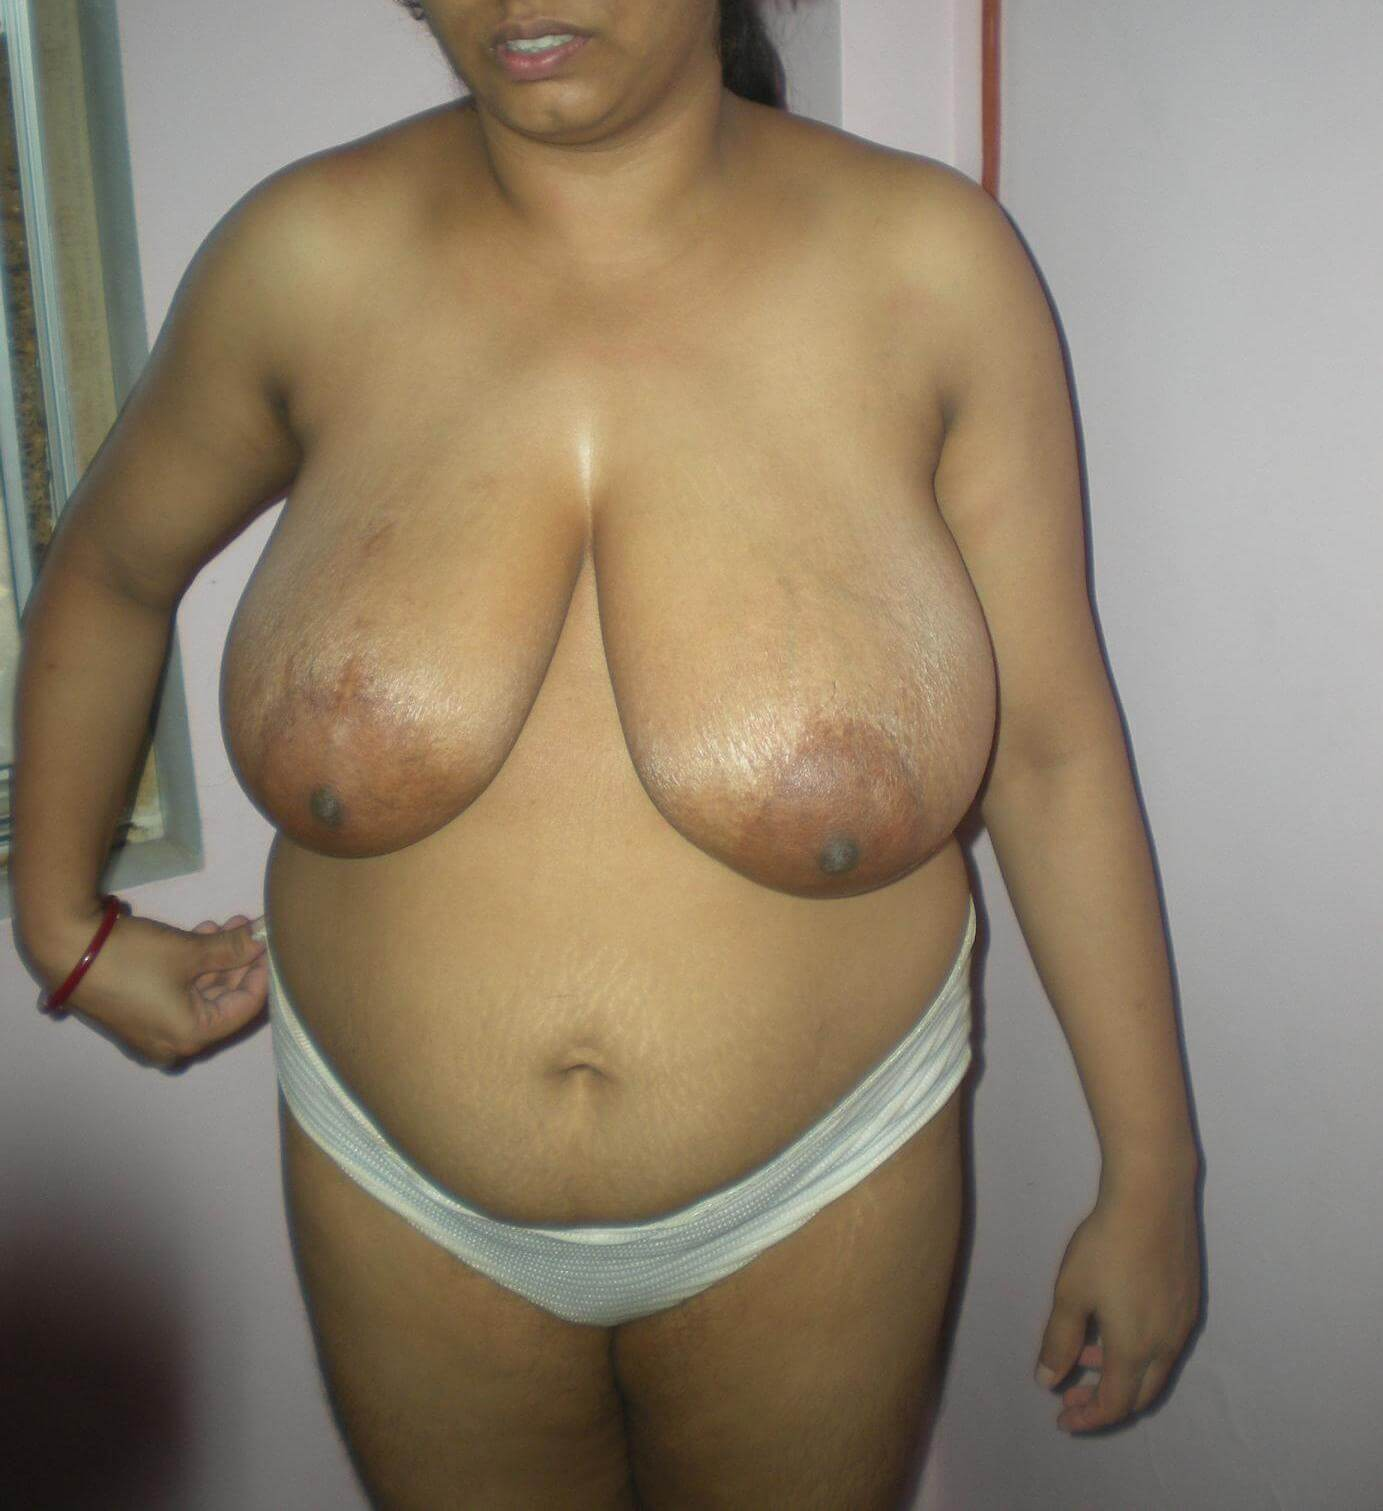 And desi aunty nude akkul photos